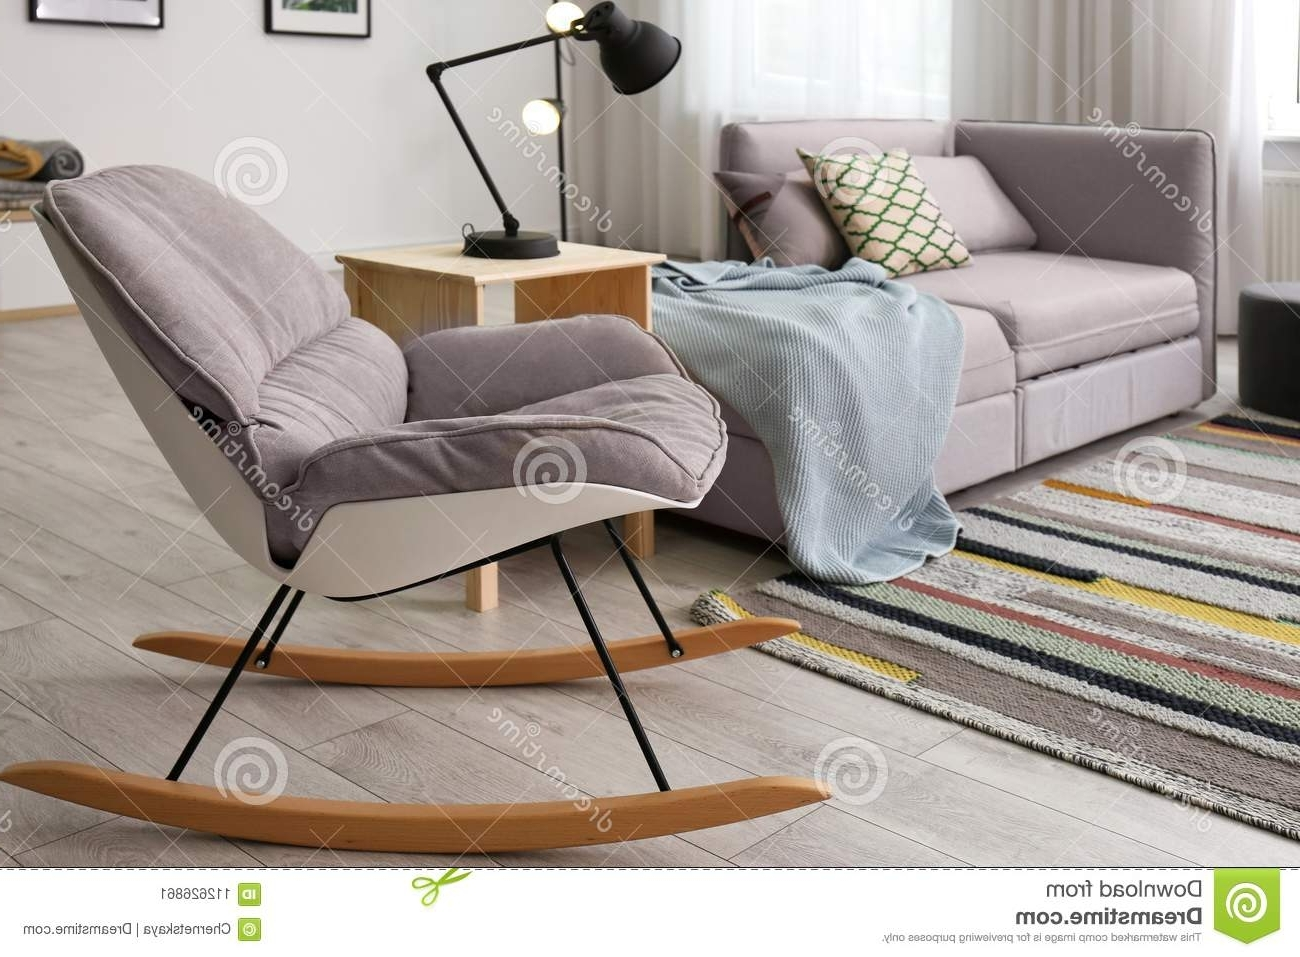 2018 Stylish Living Room Interior With Rocking Chair Stock Image – Image With Regard To Rocking Chairs For Living Room (View 2 of 15)